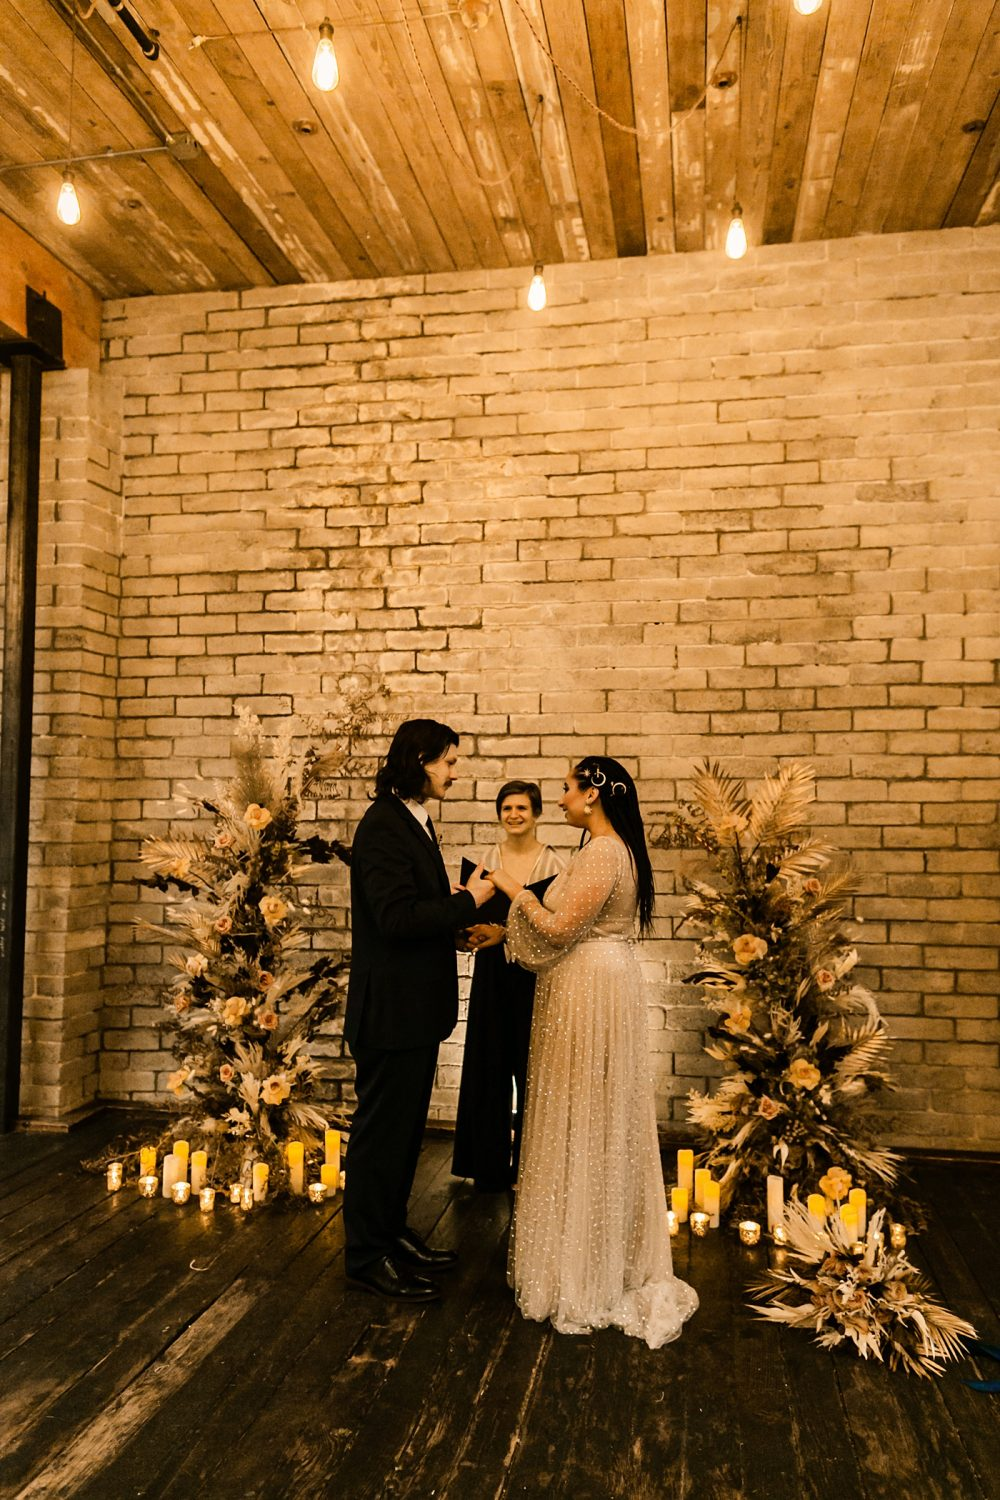 intimate elopement wedding officiant indoor venue downtown seattle